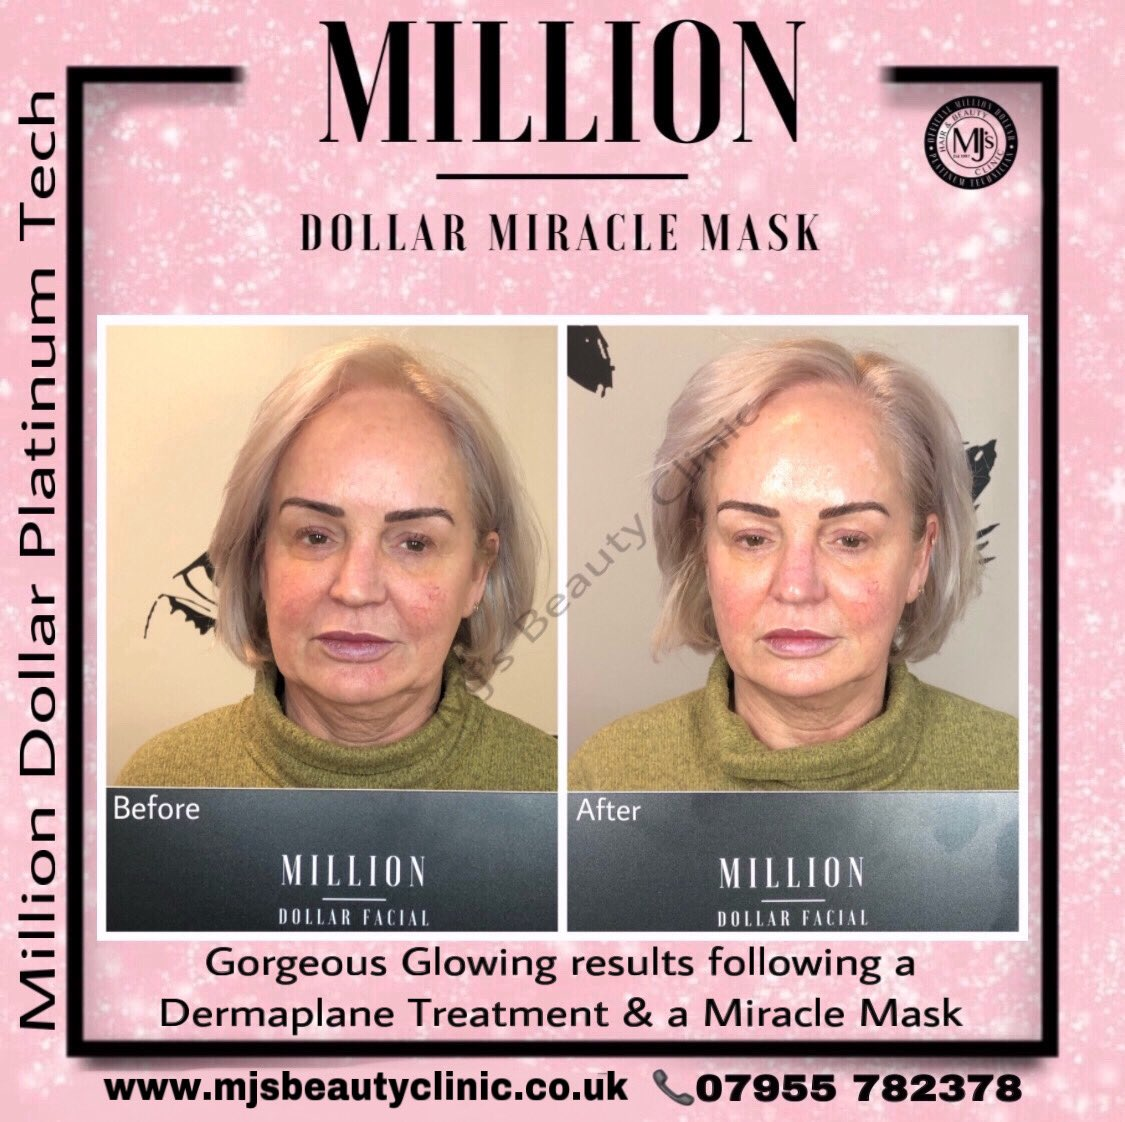 #Mothersday Offer #Milliondollar Miracle Mask Only £50 until 30th March 2020!  #royton #mjsbeautyclinic #manchester #platinumtech #manchesterfacials #skincare  #milliondollarfacials #miraclemask #iceglobes #newtreatments #flawlessskin #skinexpert #dermaplane #collagenproductionpic.twitter.com/ADb8bDwotI